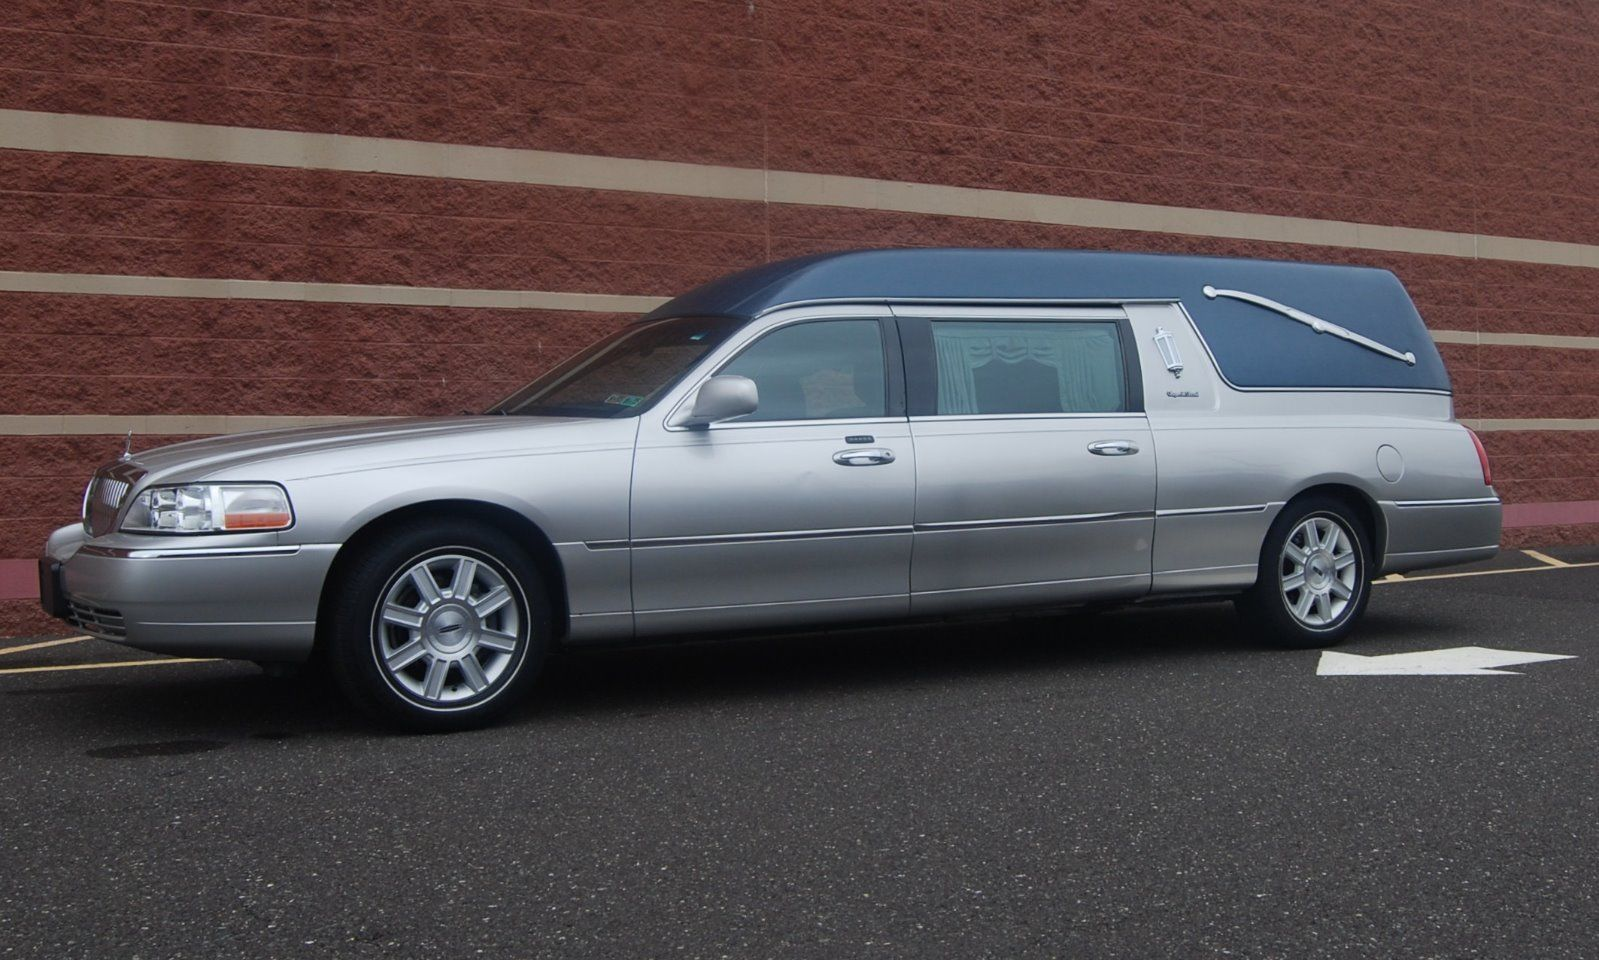 2009 Lincoln Town Car S Amp S Coach Funeral Hearse For Sale